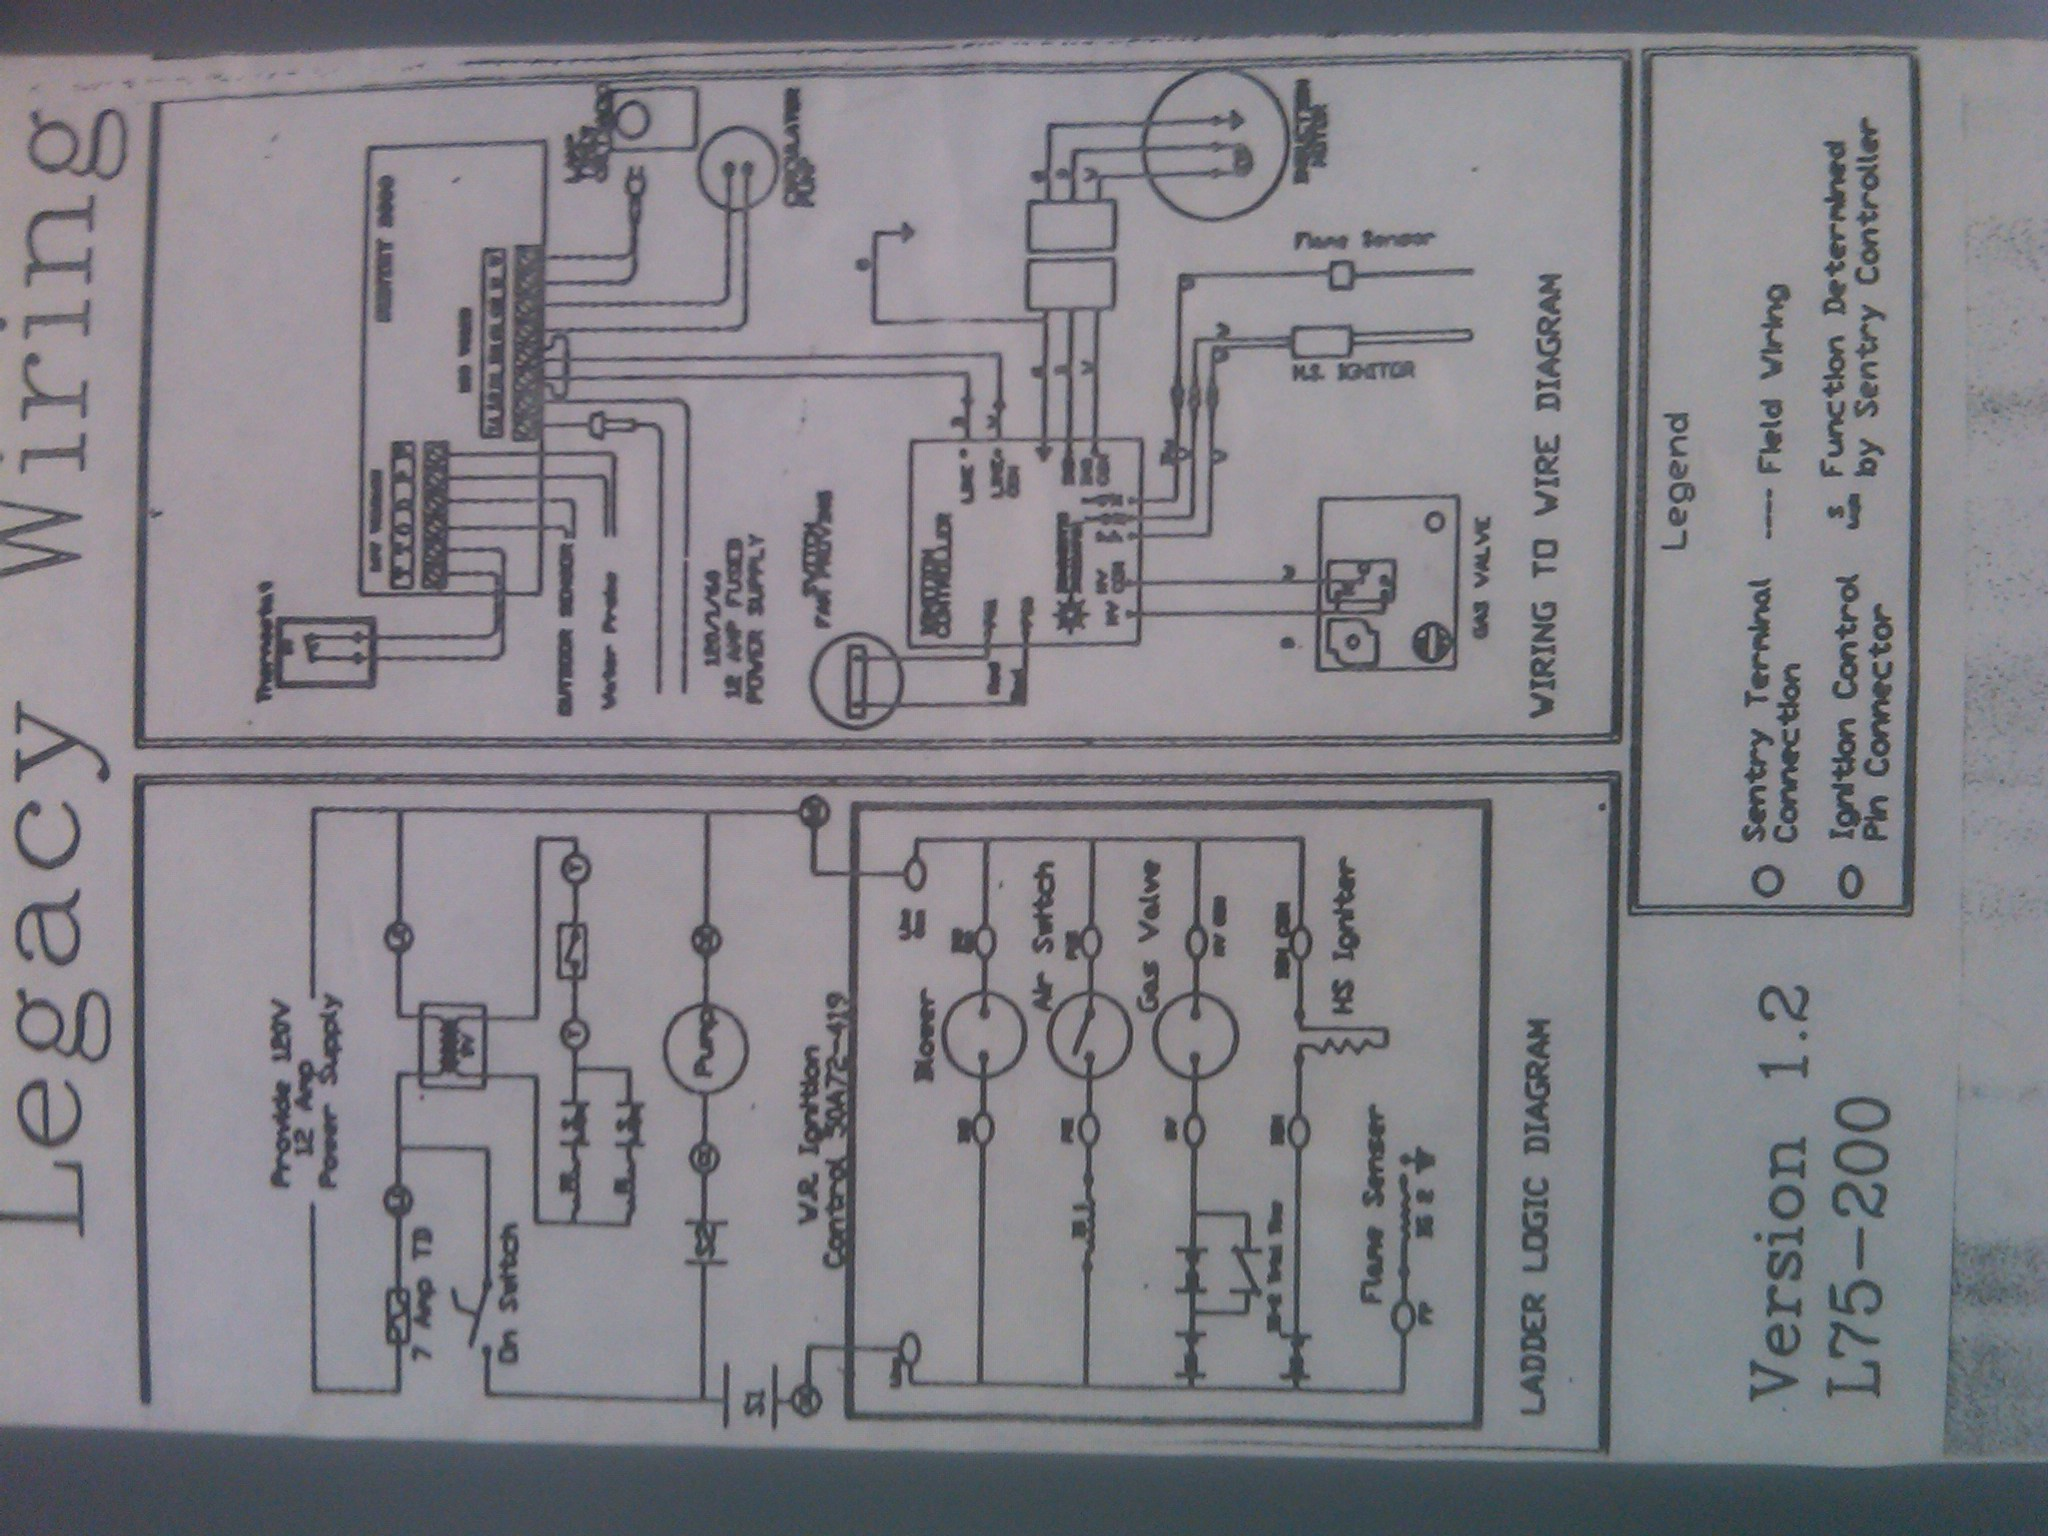 Dorable Honeywell Zone Valve Wiring Diagram Pattern - Wiring Diagram ...